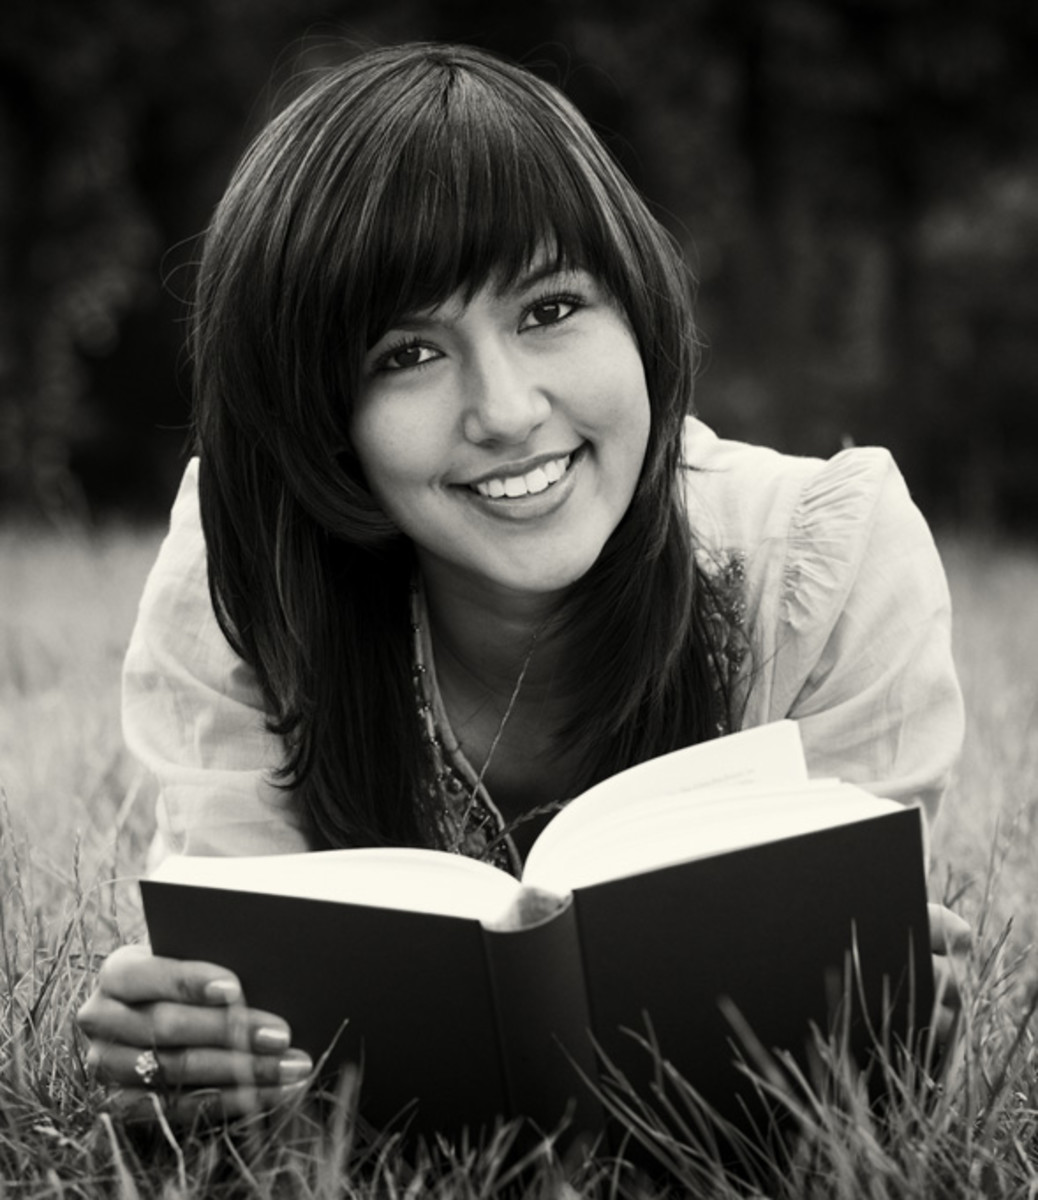 A woman models 'book reading'. She can get away with not reading this book because she has a modeling career. You, on the other hand, will actually have to read the book.